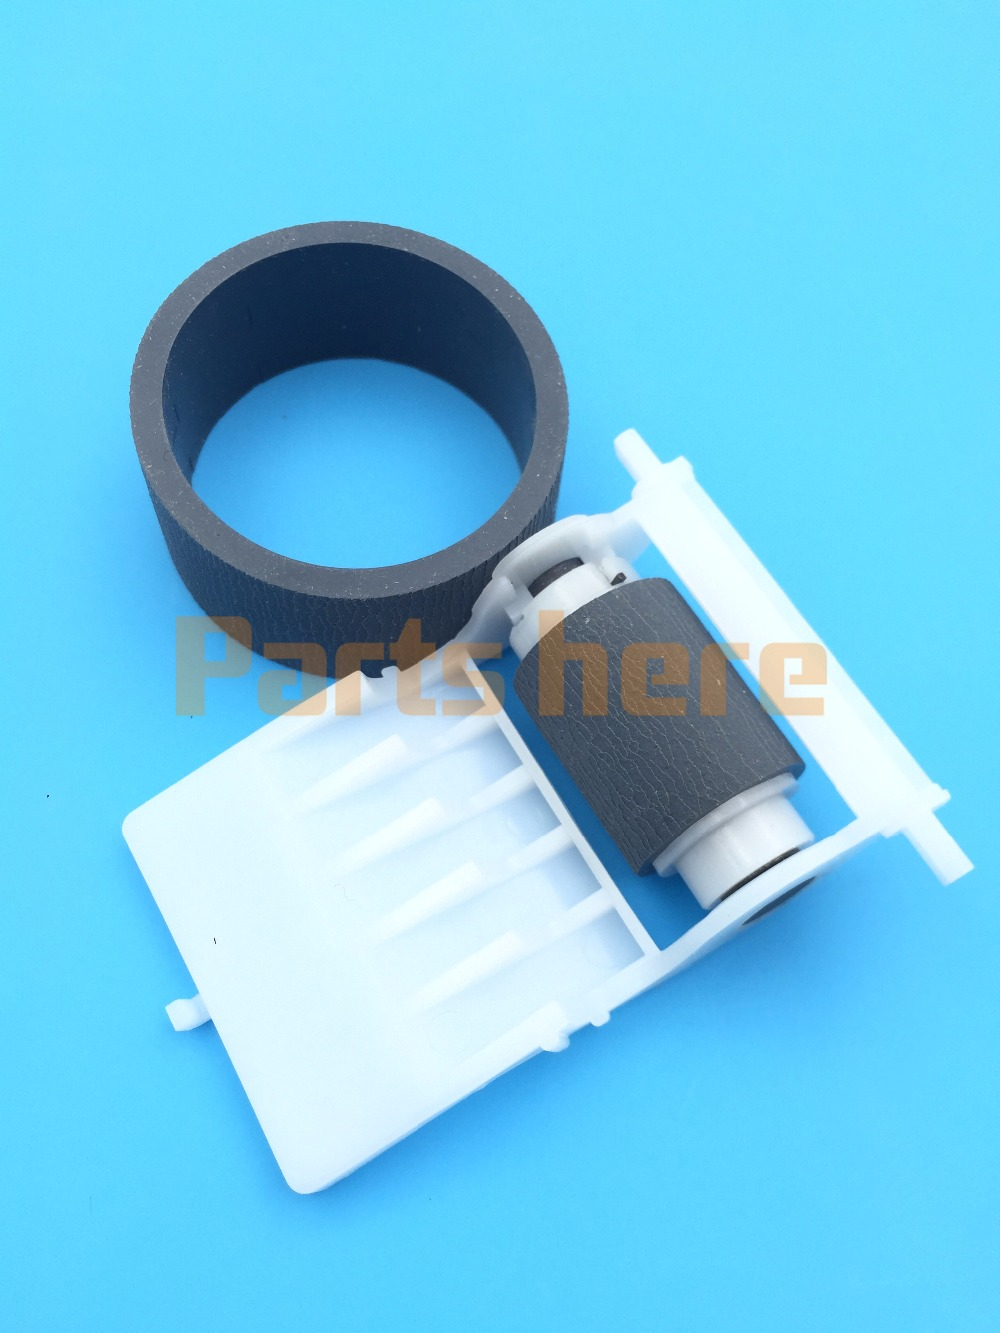 Buy Epson Assy And Get Free Shipping On Gear Rda Lx300 Lx 300 Ll Ribbon Drive Lq Lq300 Ii